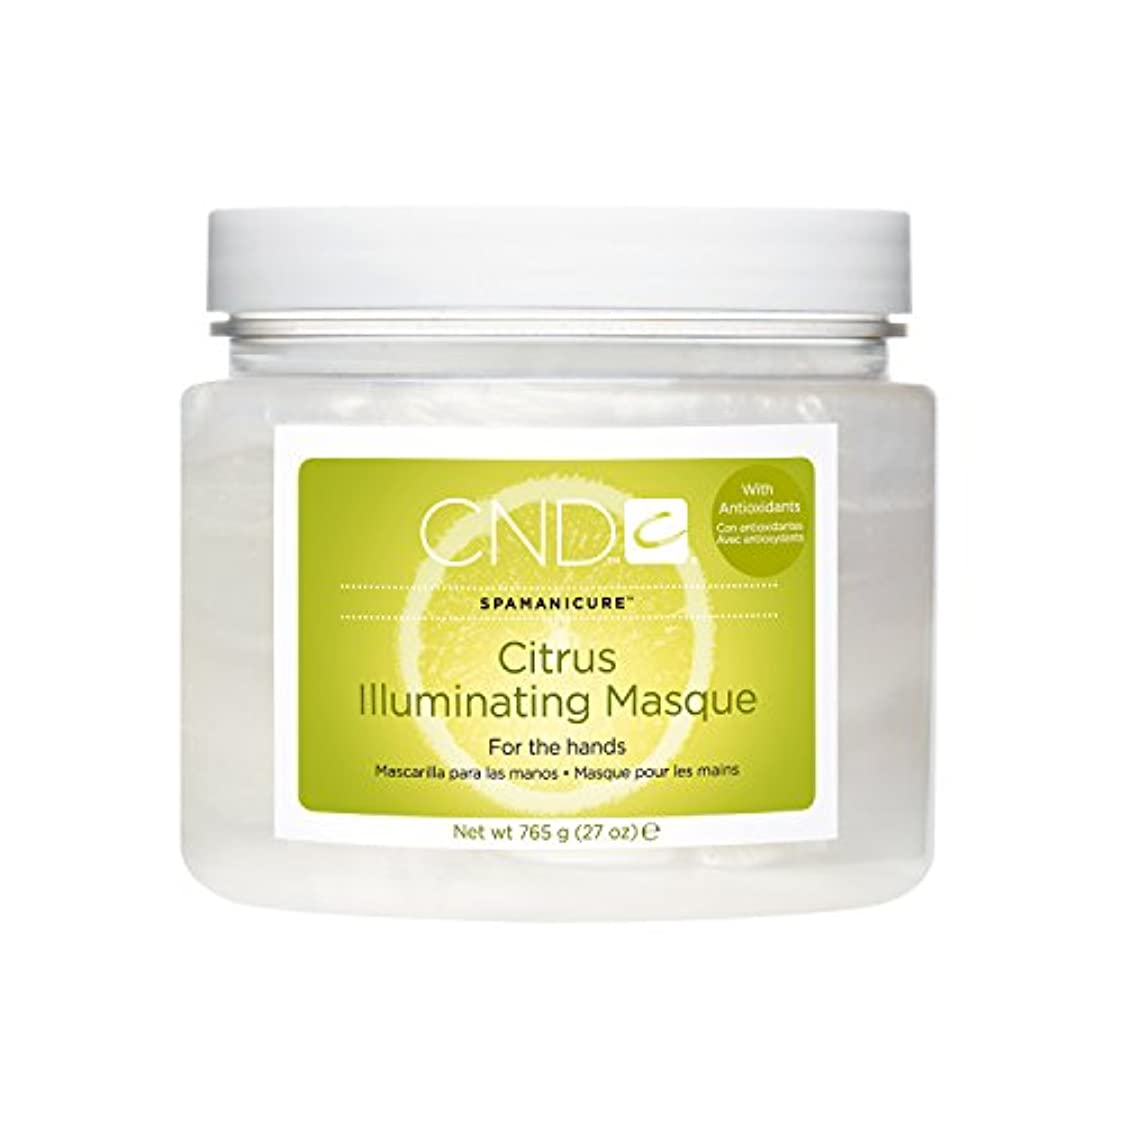 却下するヒョウポスト印象派CND SpaManicure - Citrus Illuminating Masque - 27oz